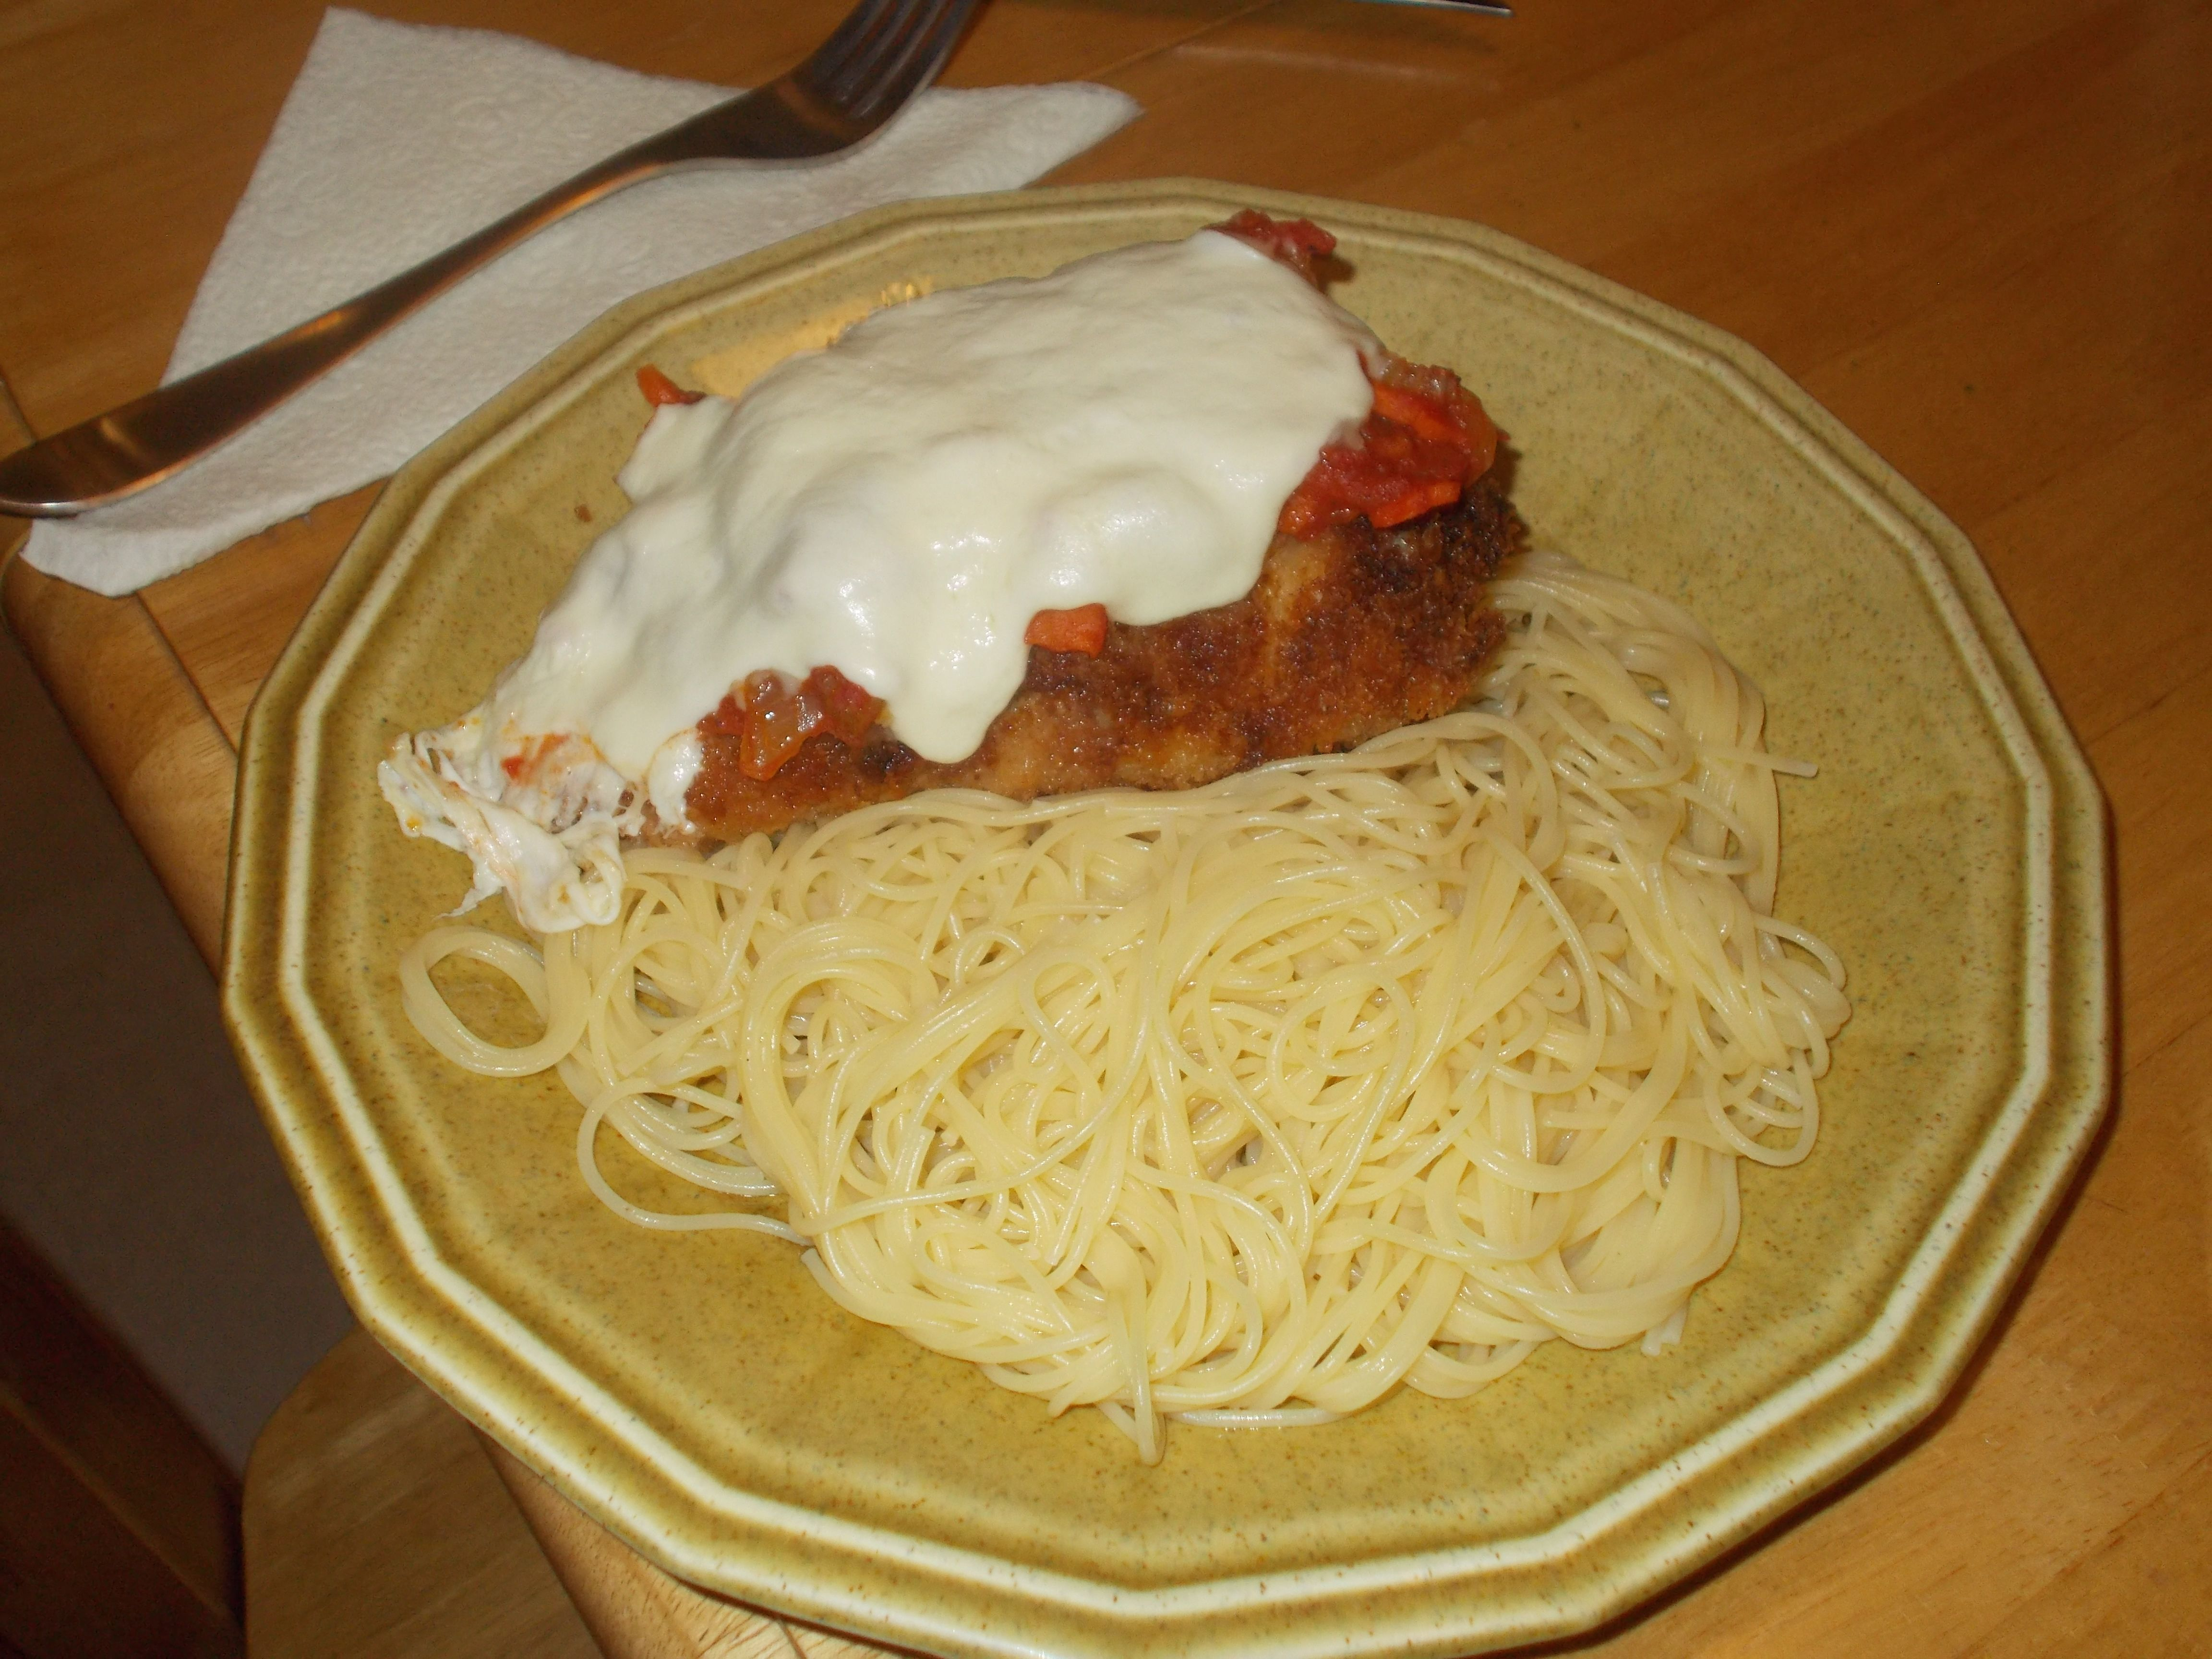 Nancy Fullers' chicken parm recipe.Turned out great